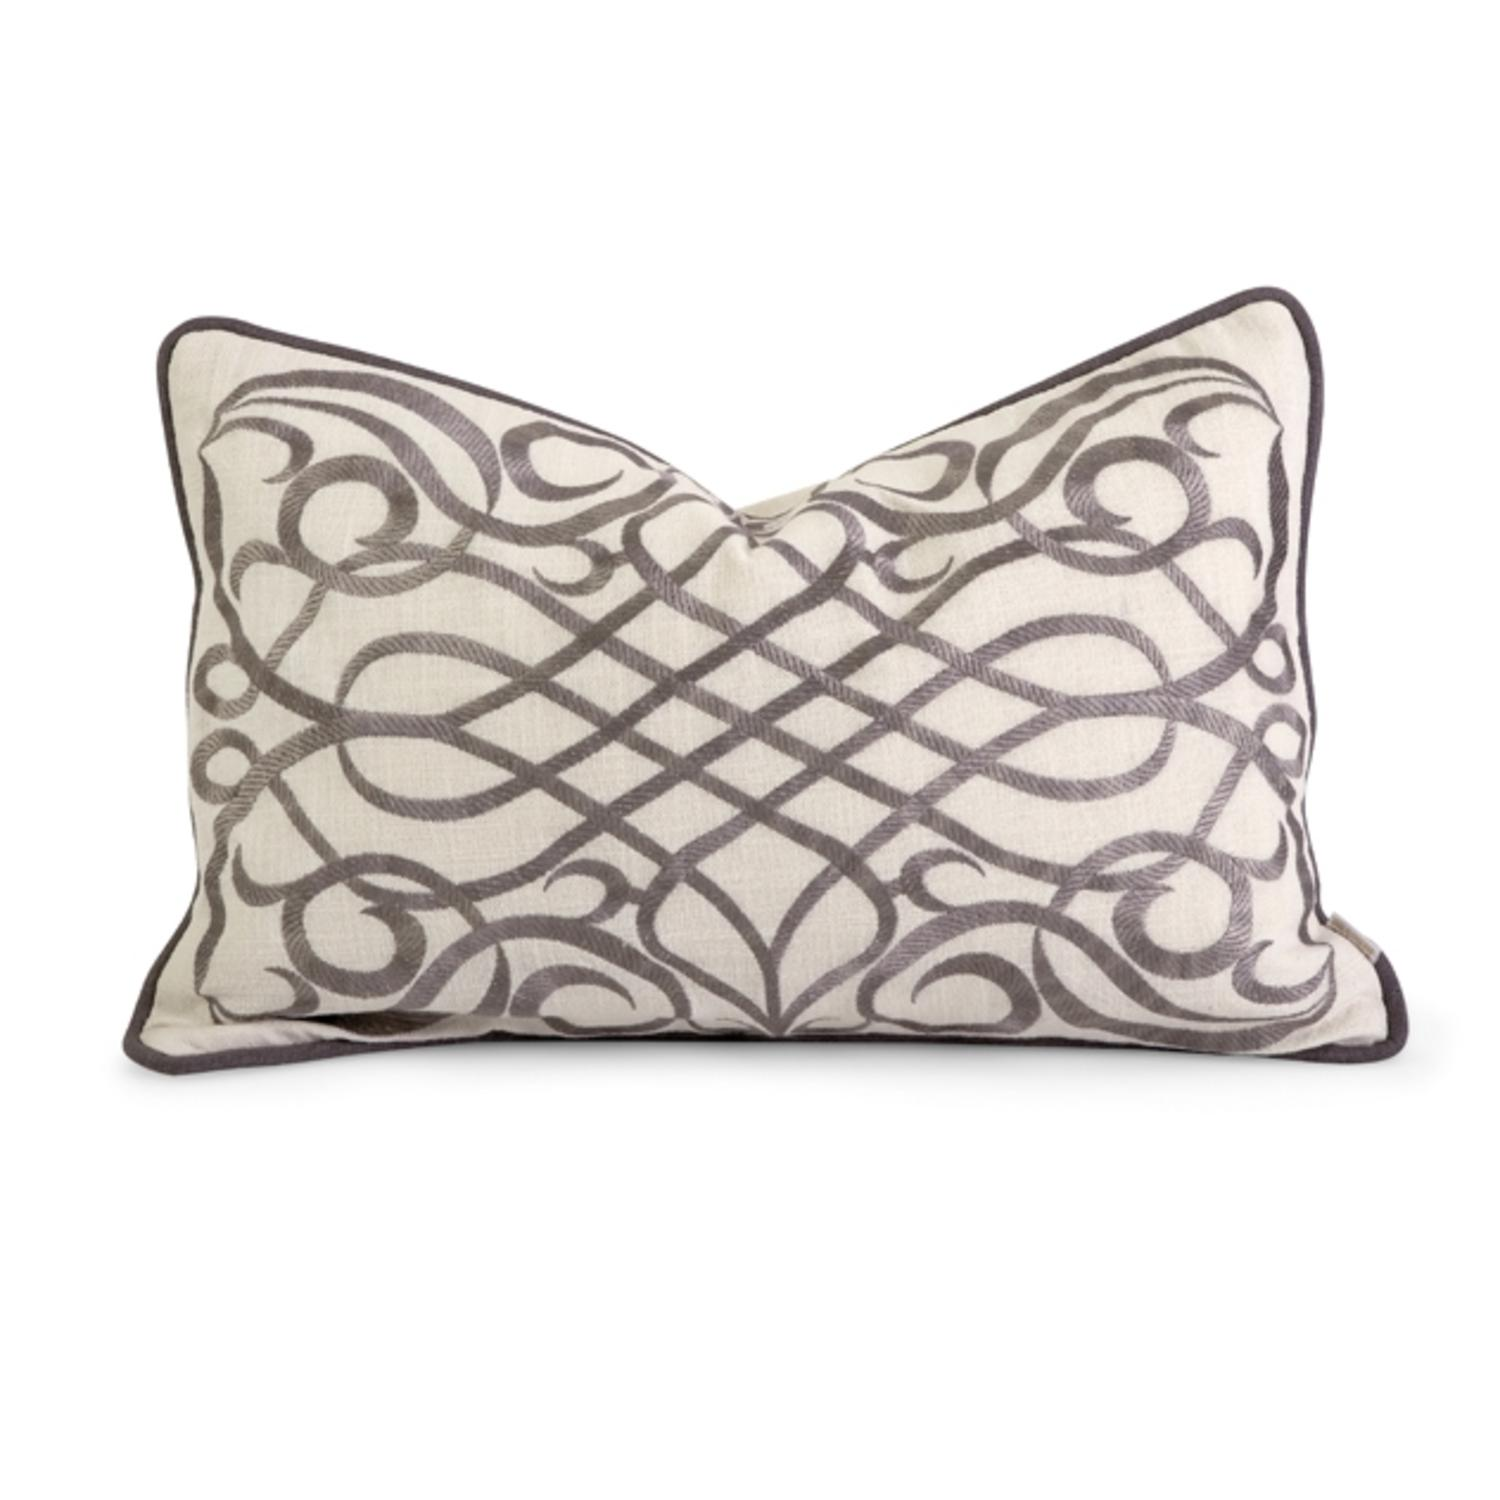 "20"" Luxurious Off-White and Grey Embroidered Cotton Down Decorative Throw Pillow"